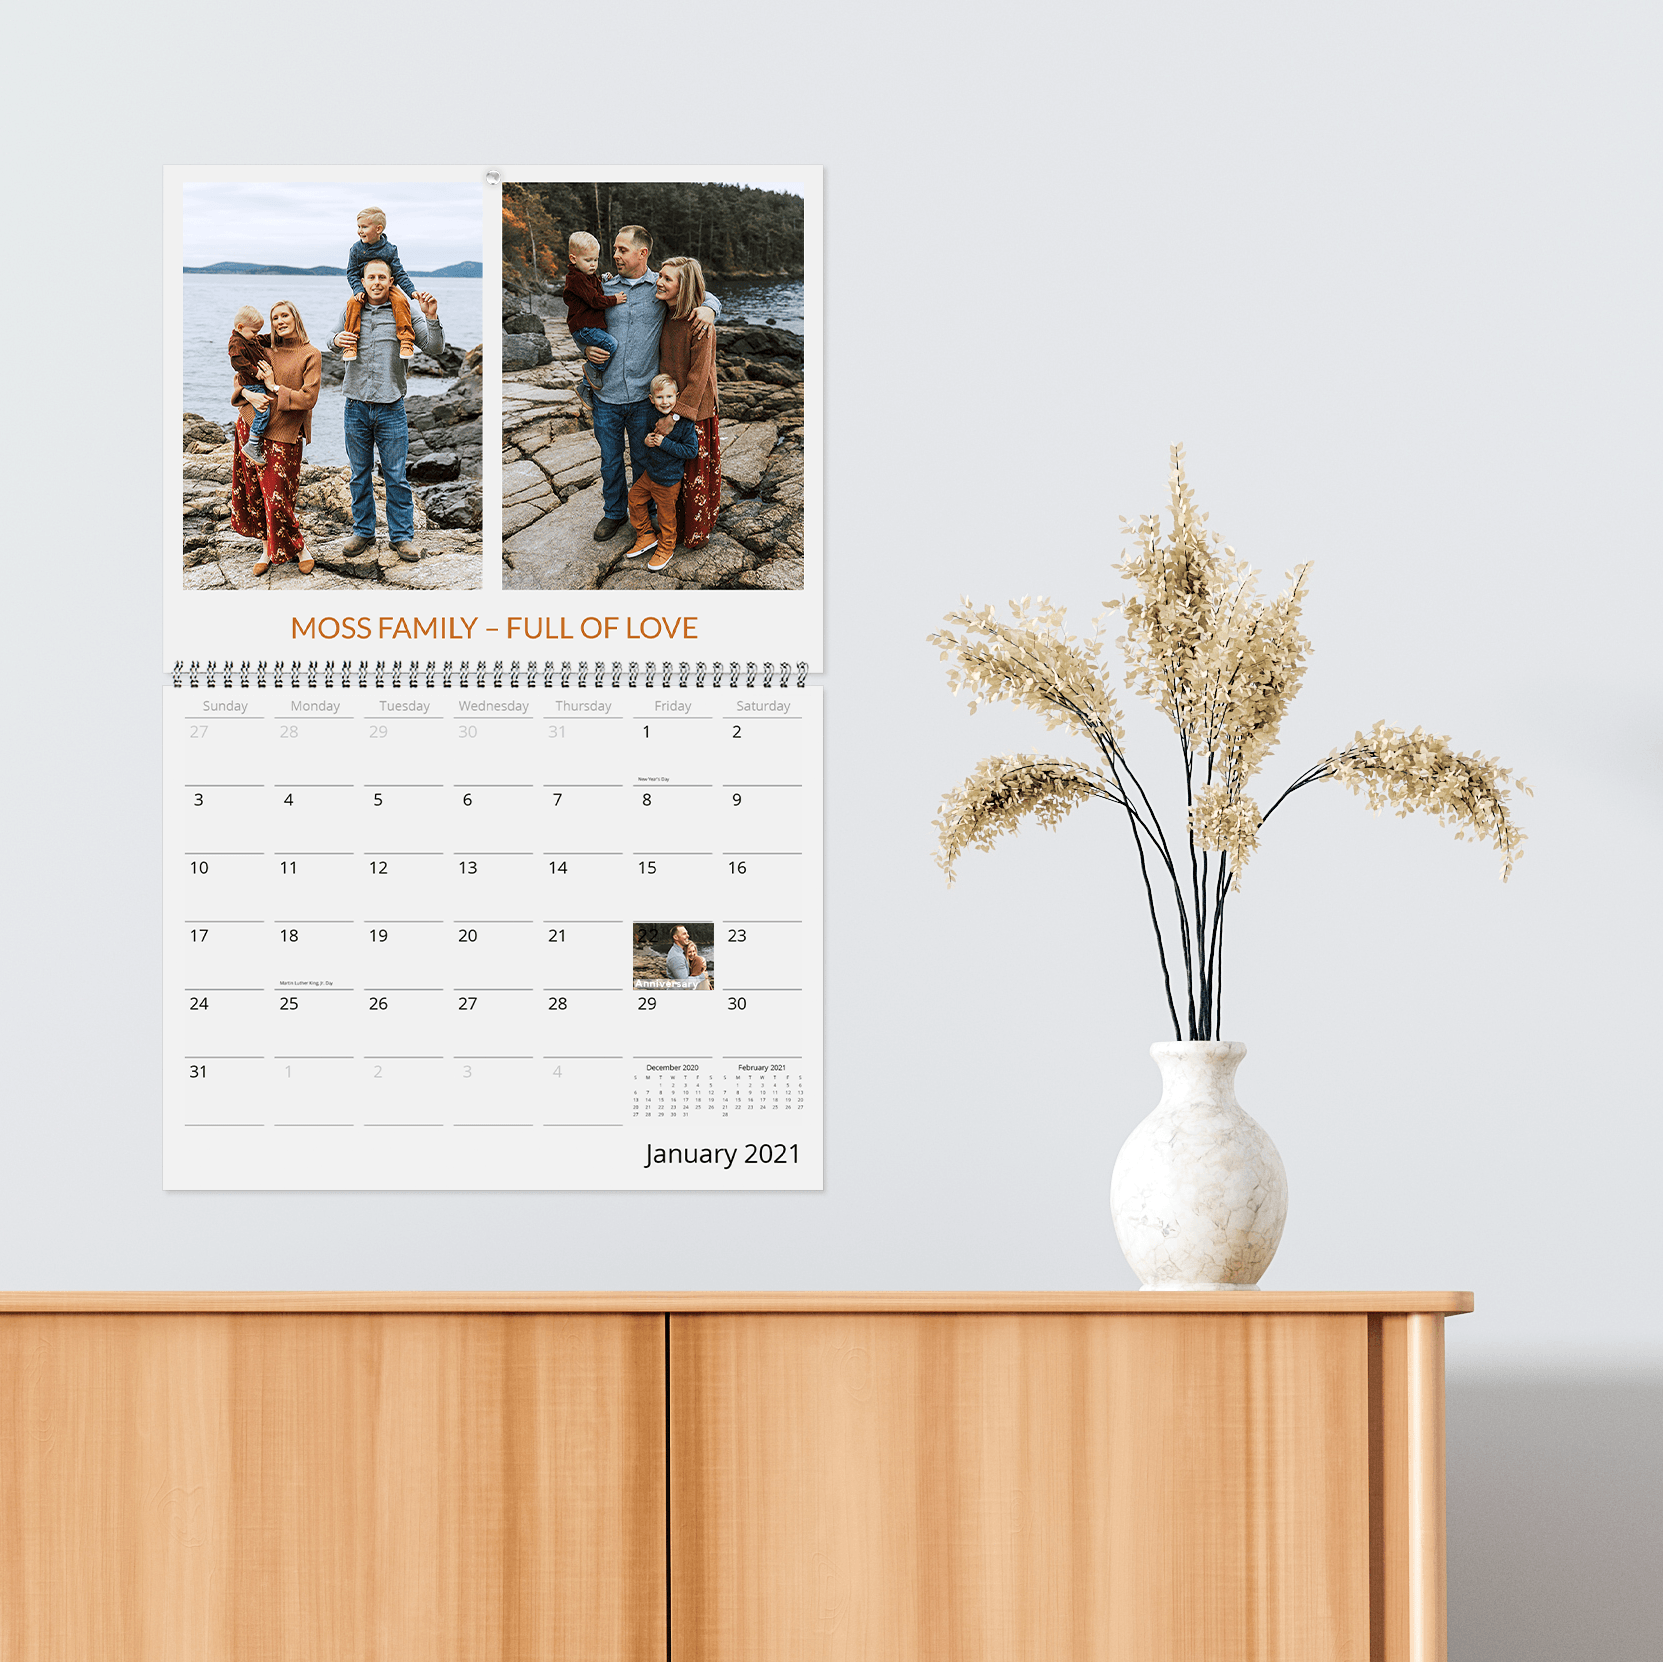 Make a custom photo wall calendar as an annual family gift tradition